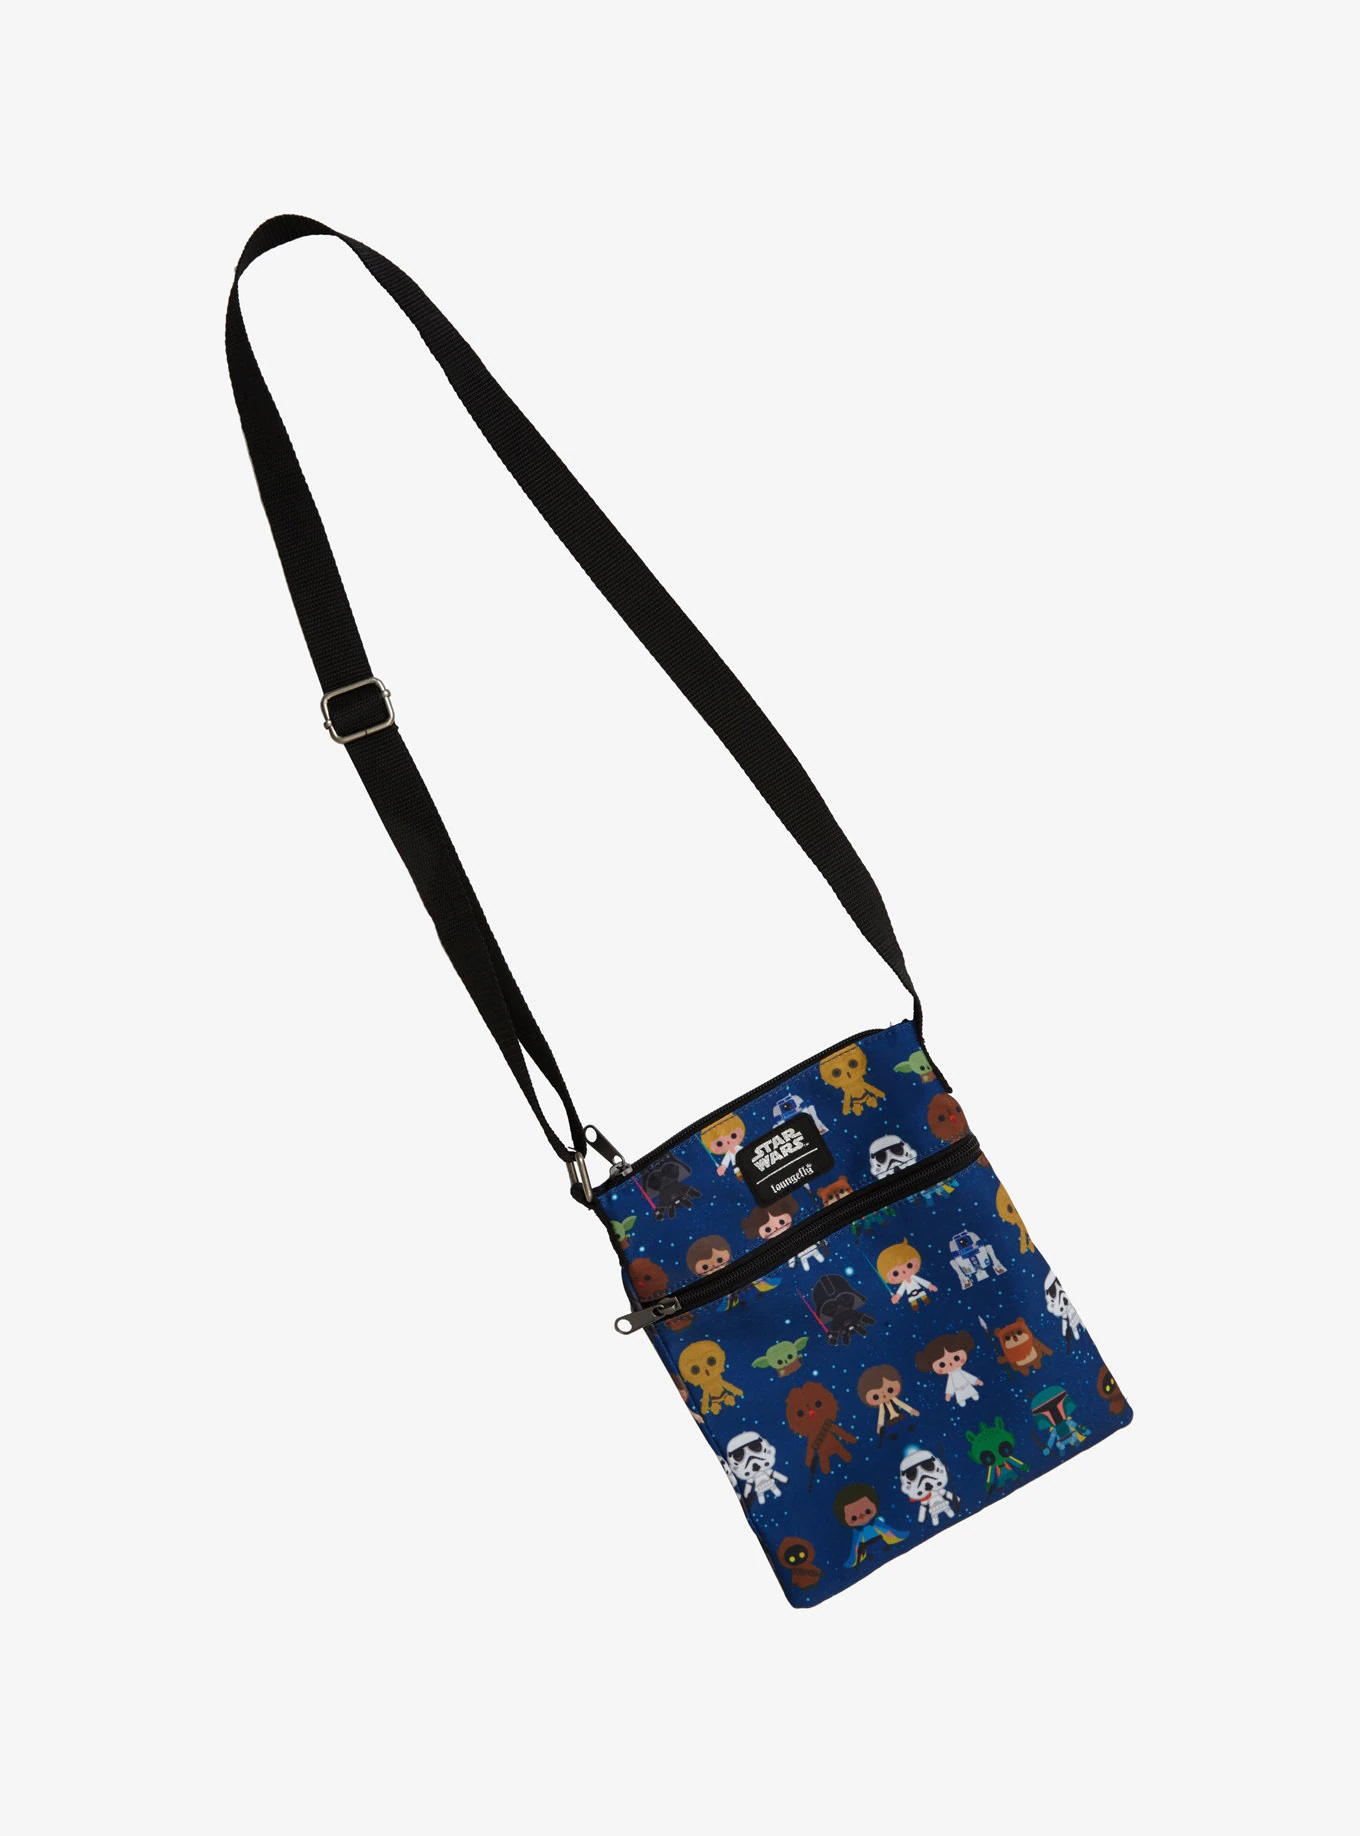 Loungefly x Star Wars Chibi Character Crossbody Bag at Hot Topic